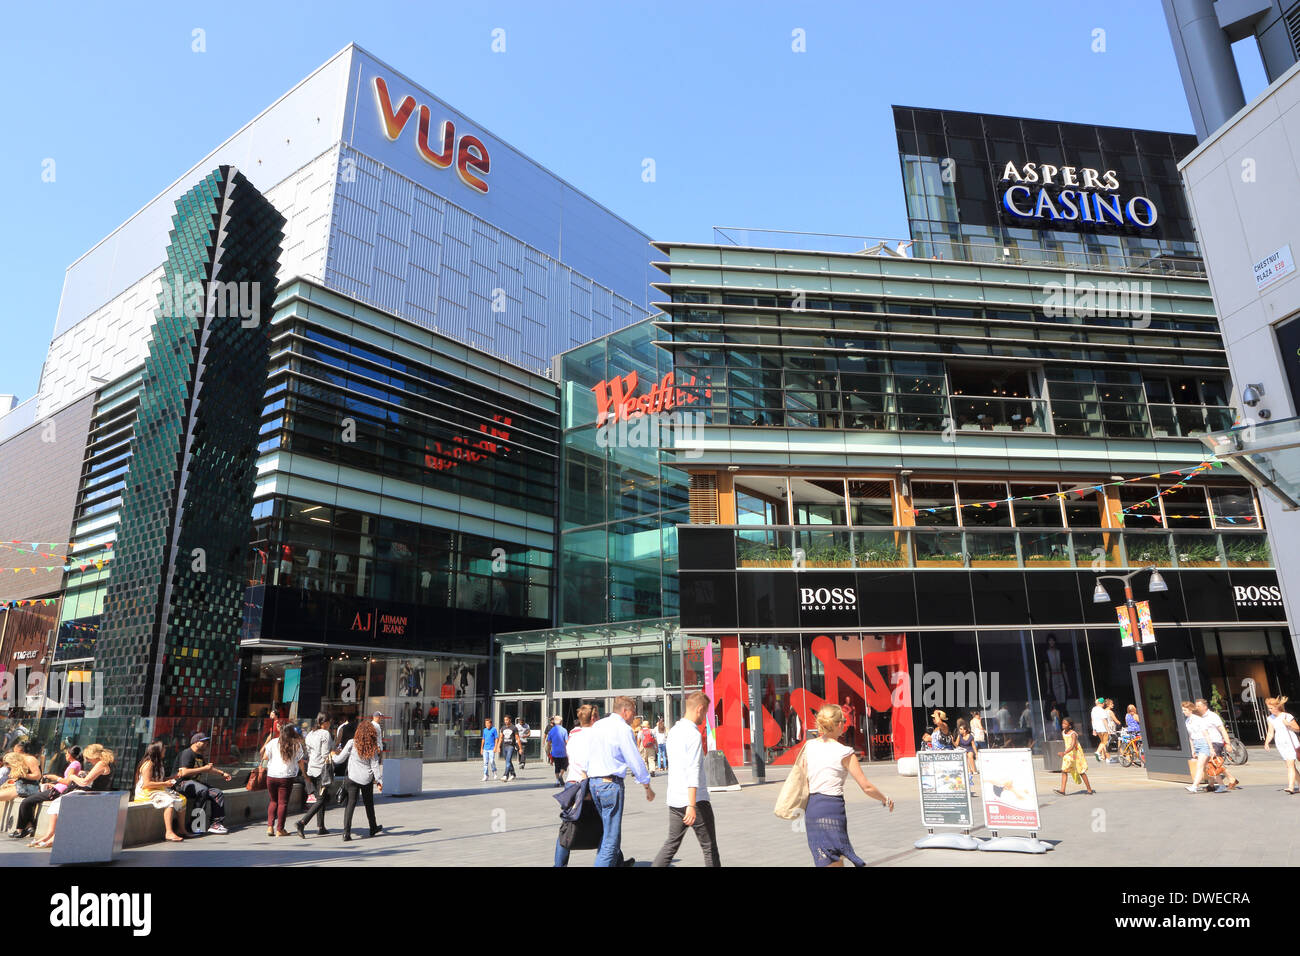 Westfield shopping centre in Stratford, East London E20, England, UK - Stock Image